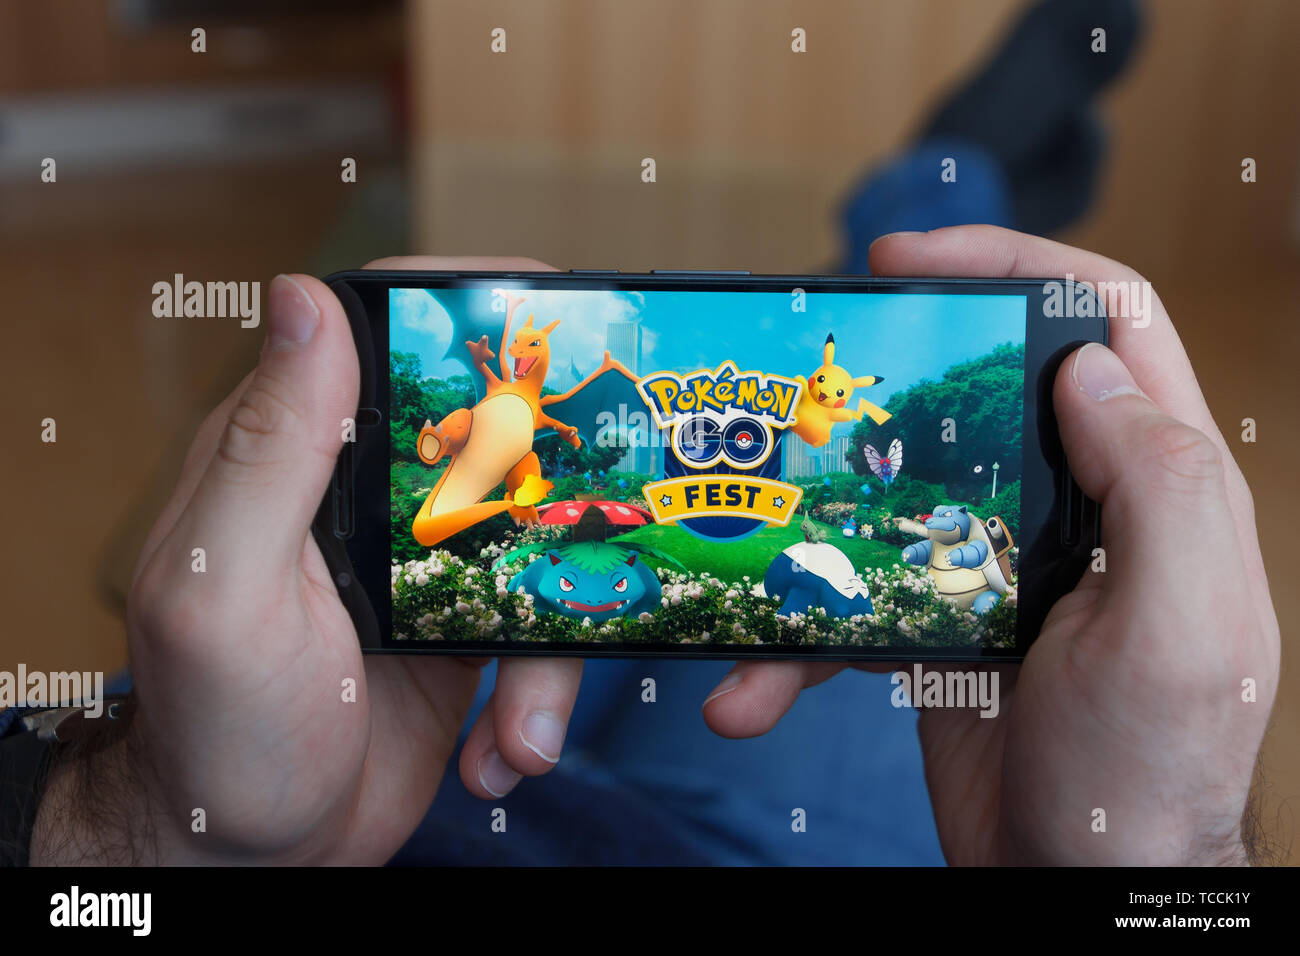 LOS ANGELES, CALIFORNIA - JUNE 3, 2019: Lying Man holding a smartphone and playing the Pokemon Go game on the smartphone screen. An illustrative edito Stock Photo